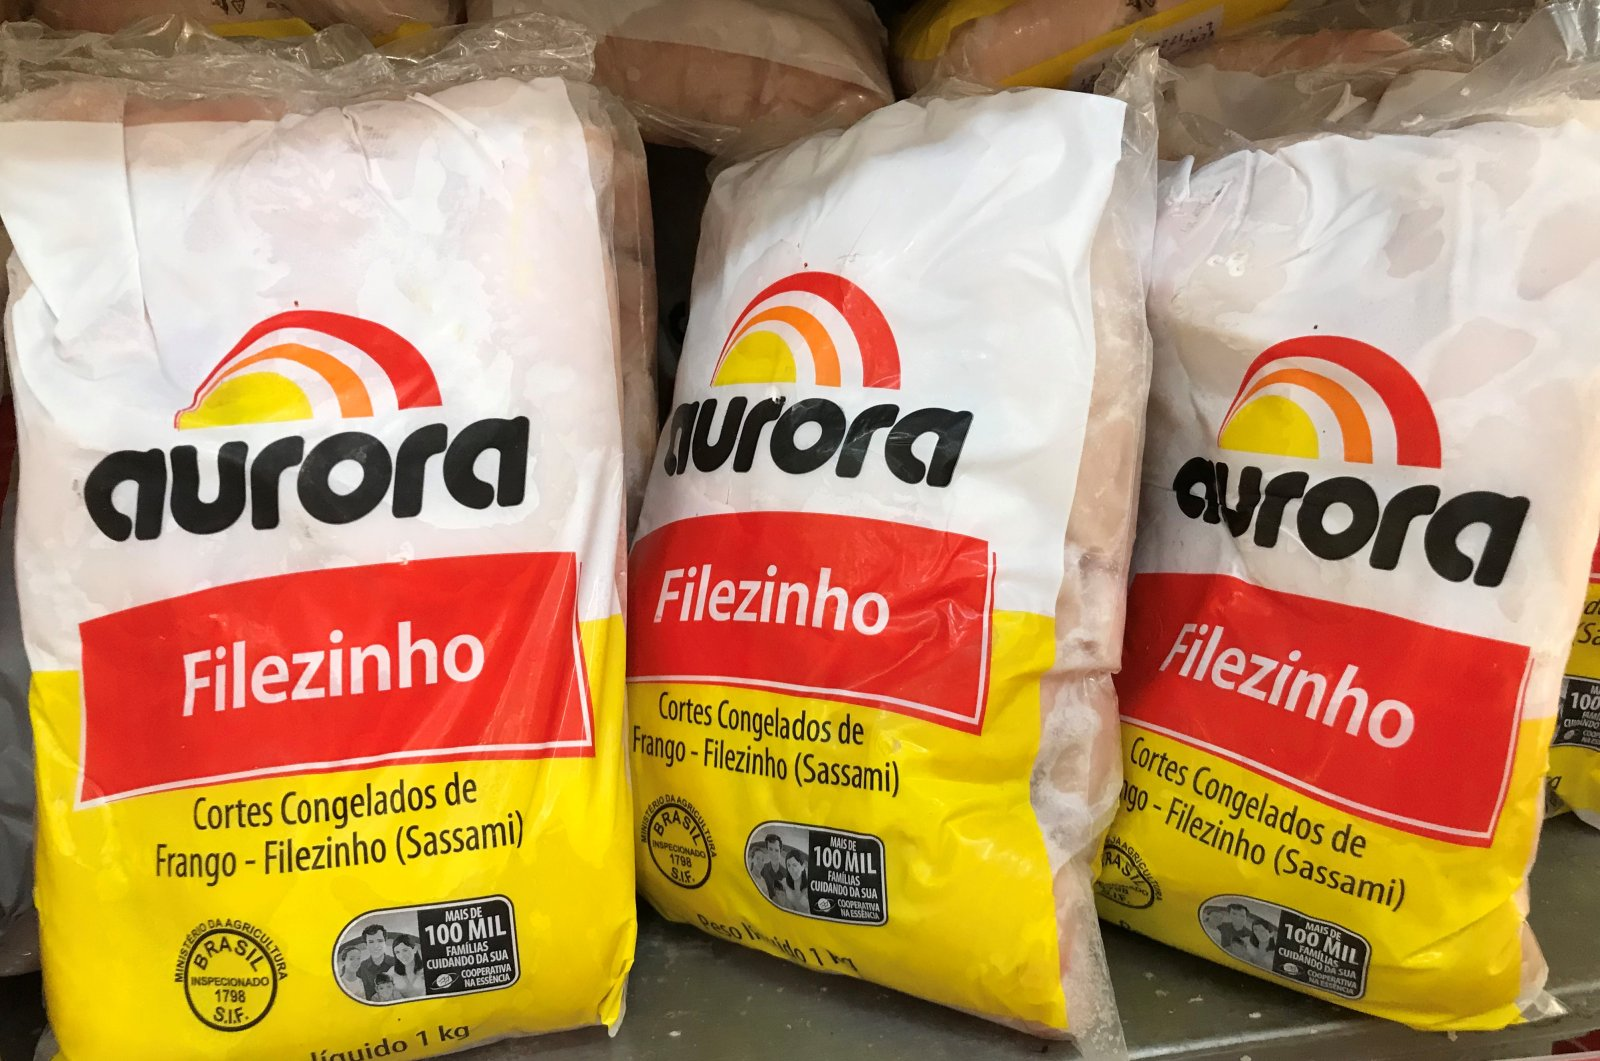 "Bags of frozen chickens ""Aurora"" are pictured at a market amid the coronavirus disease (COVID-19) outbreak, in Rio de Janeiro, Brazil, Aug. 13, 2020. (REUTERS Photo)"